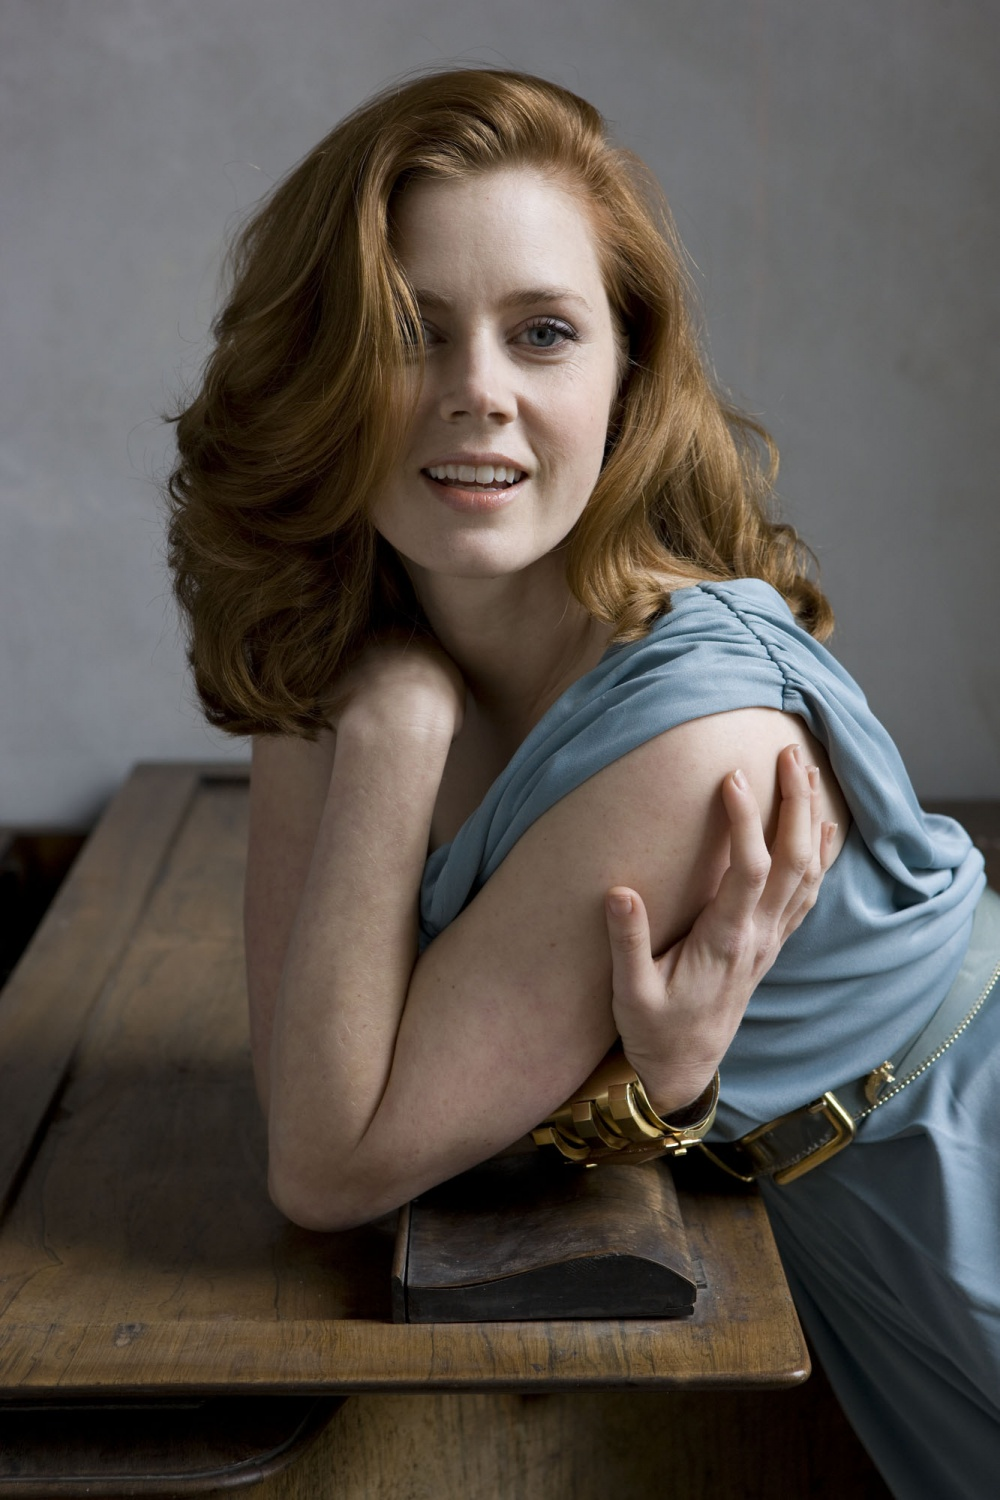 ICloud Amy Adams nudes (38 foto and video), Ass, Paparazzi, Instagram, swimsuit 2020